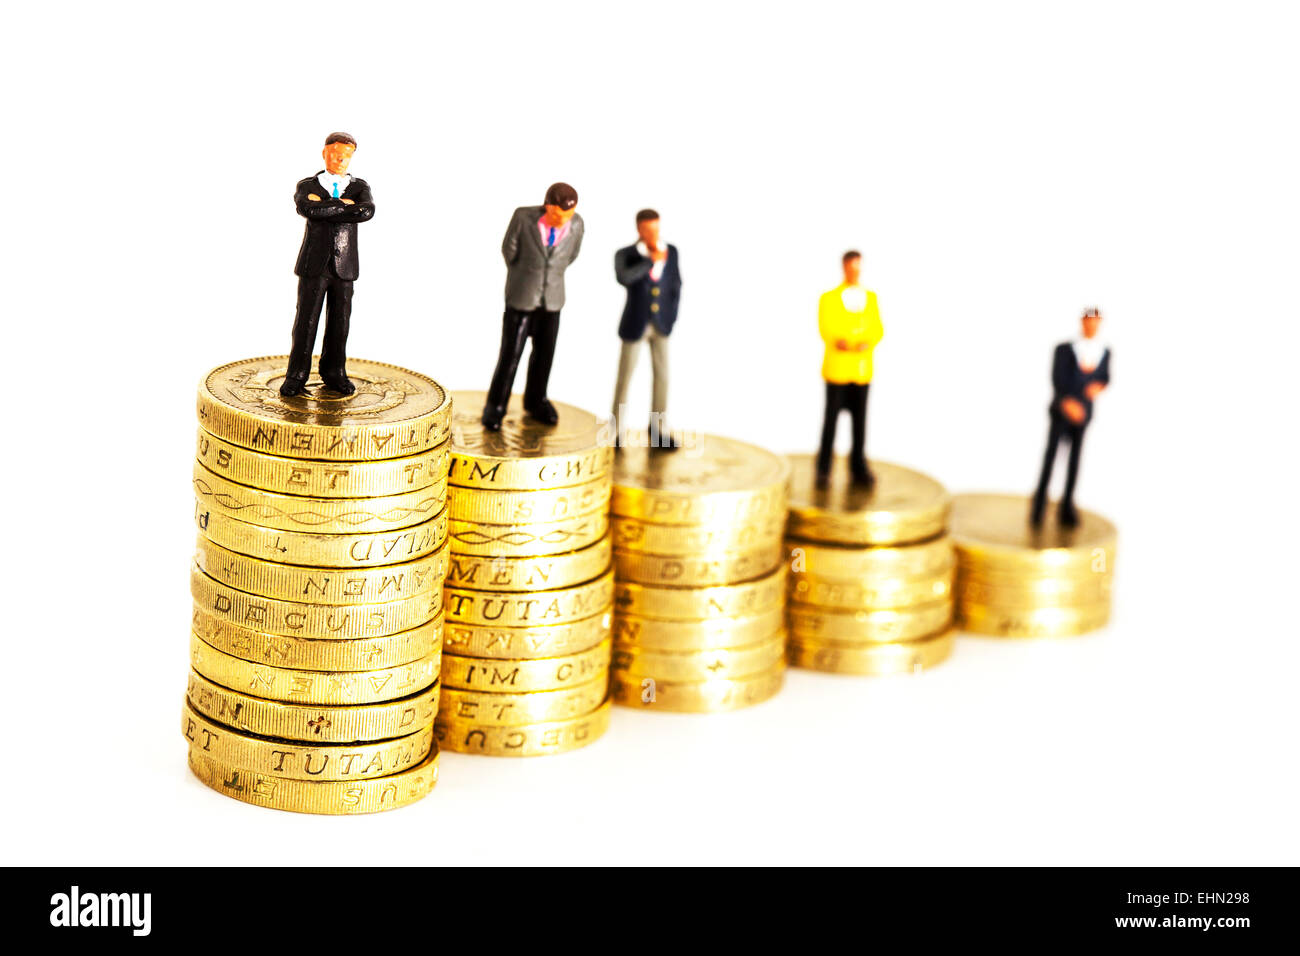 pay scale within business represented by pound coin stacks and businessmen isolated cut out cutout white background - Stock Image